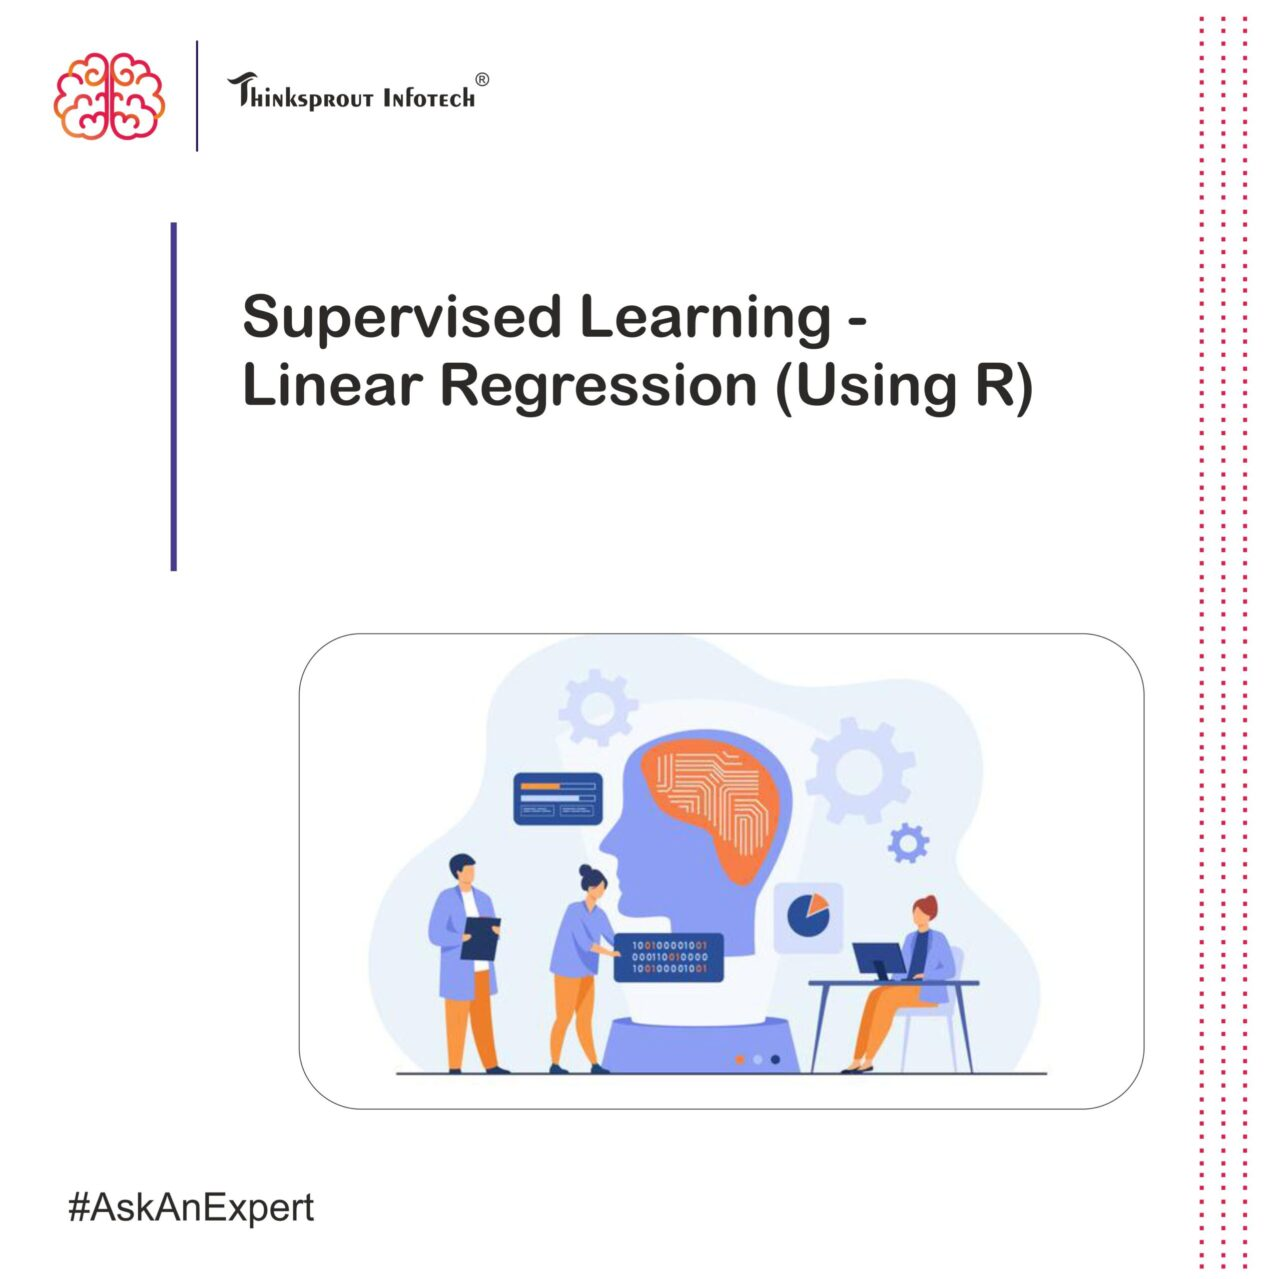 Supervised Learning—Linear Regression (Using R)